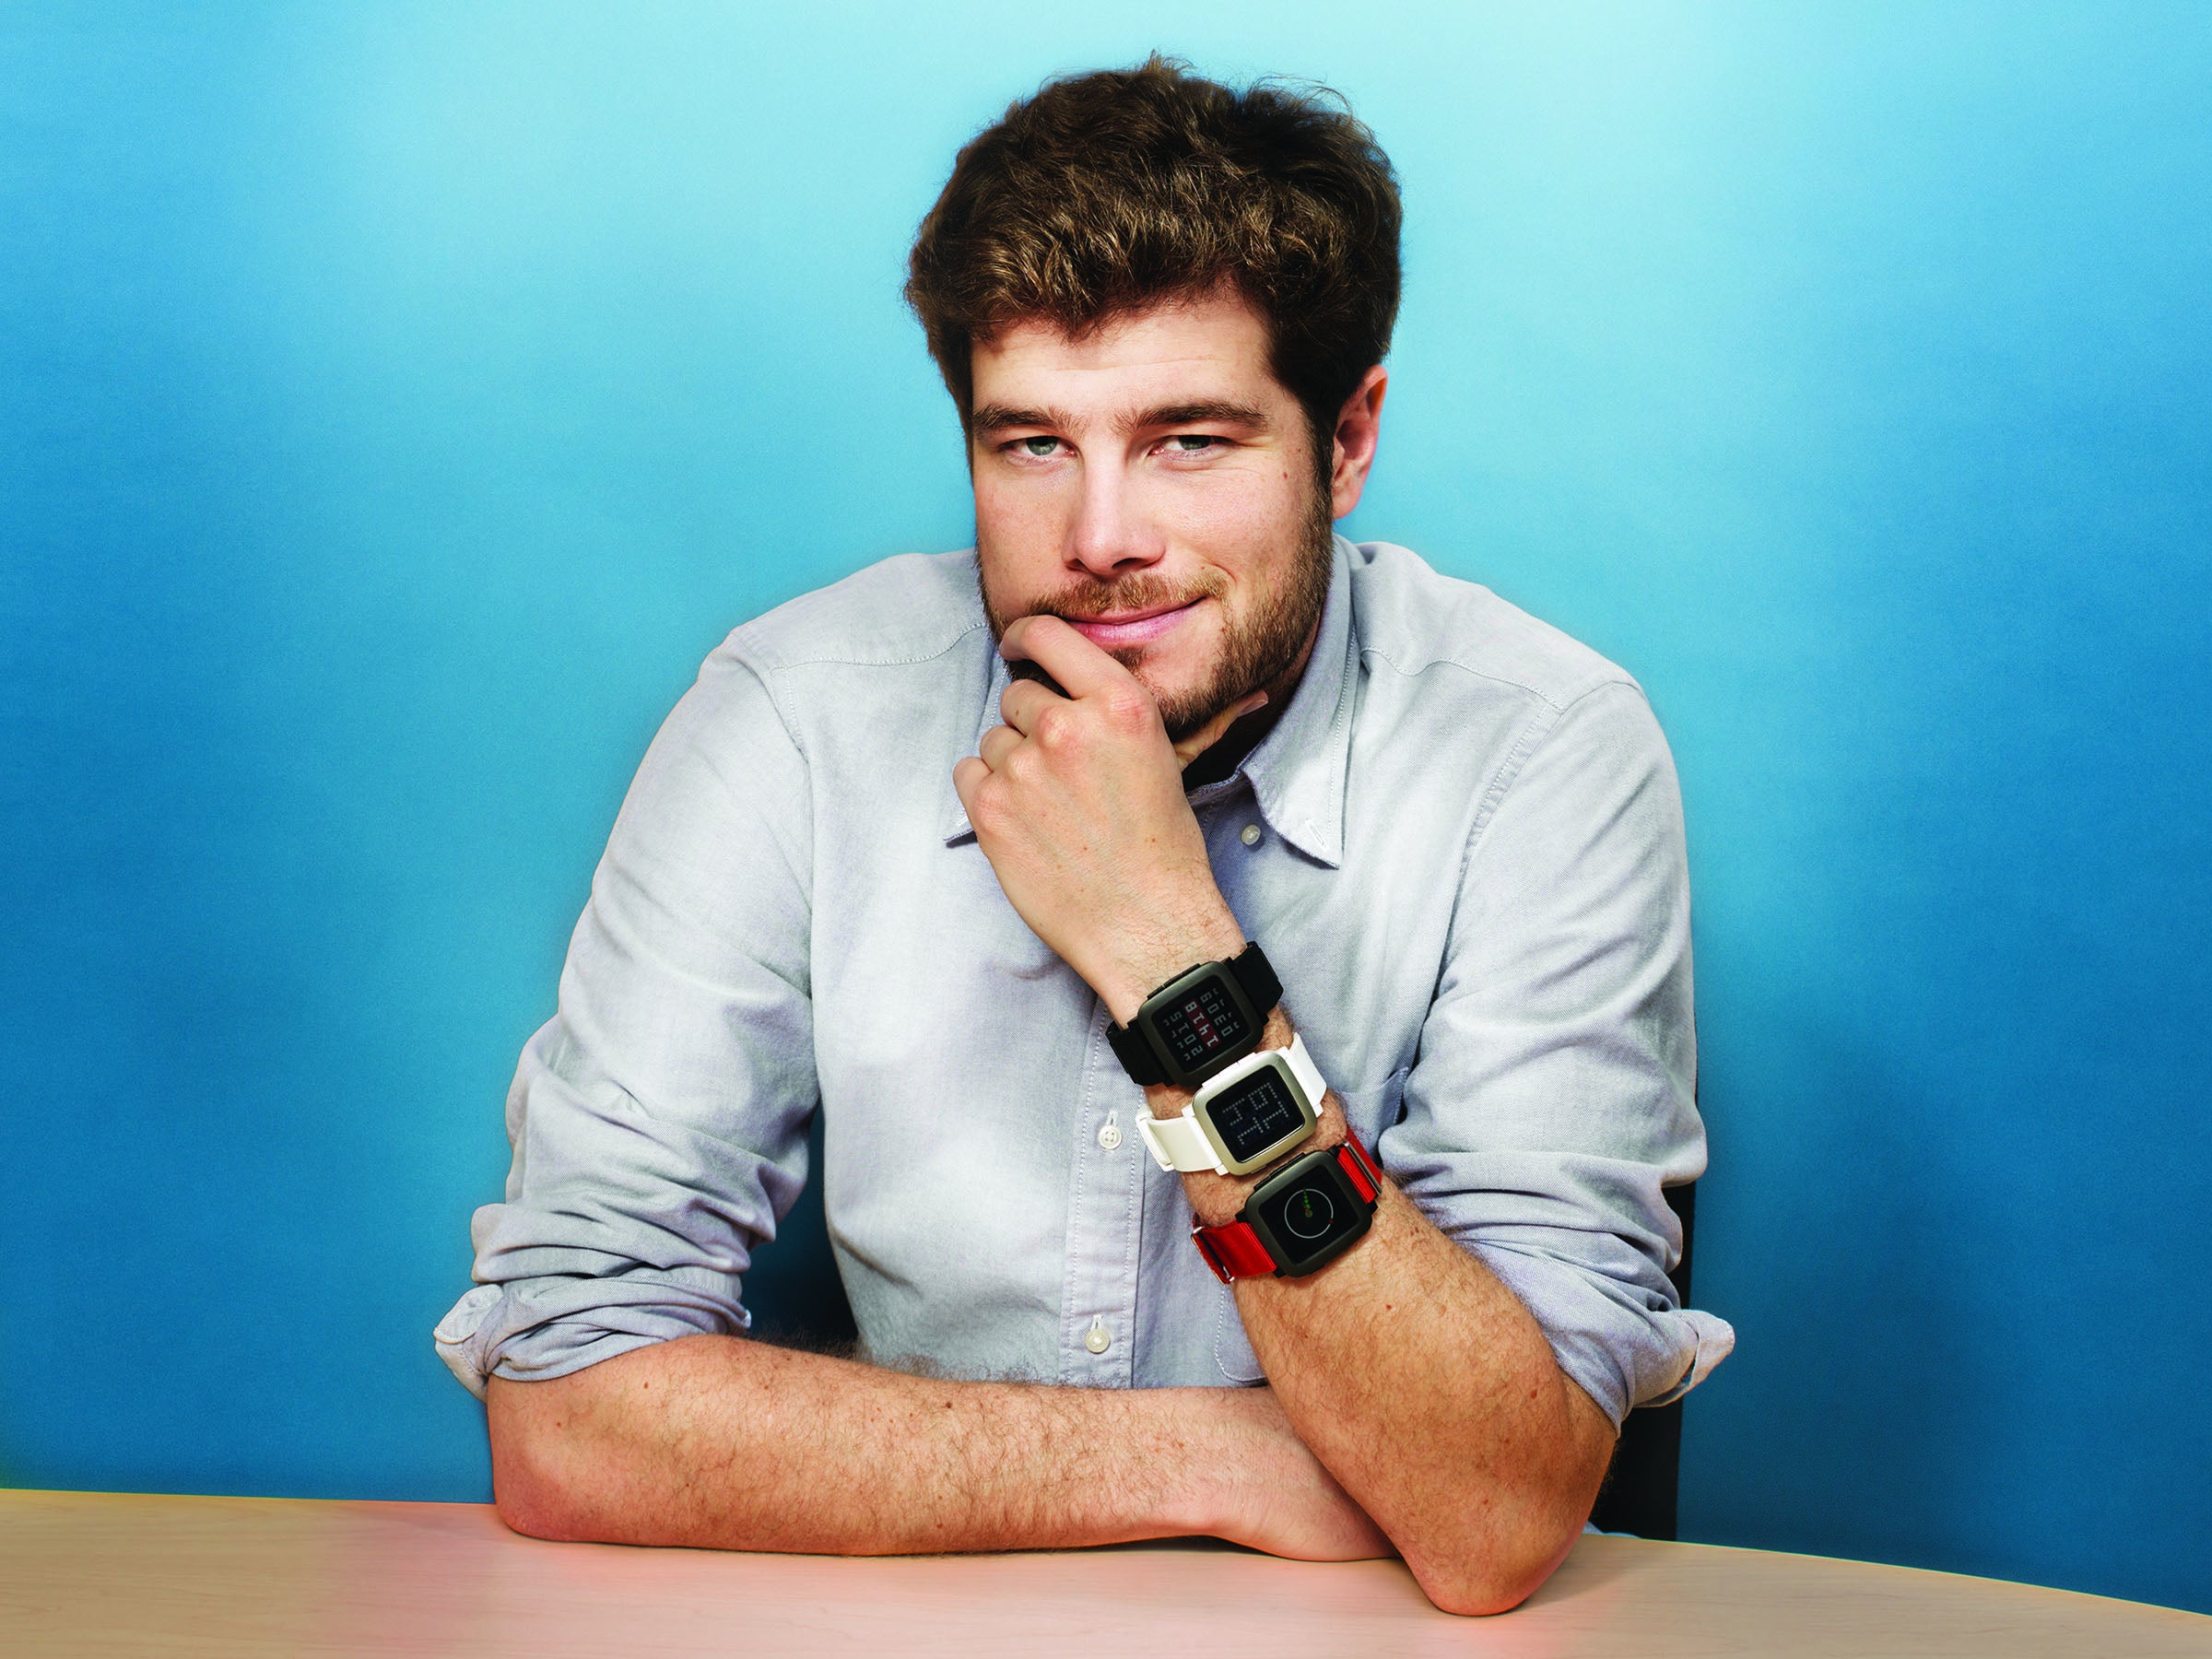 How Pebble's CEO Plans To Win The SmartWatch Wars